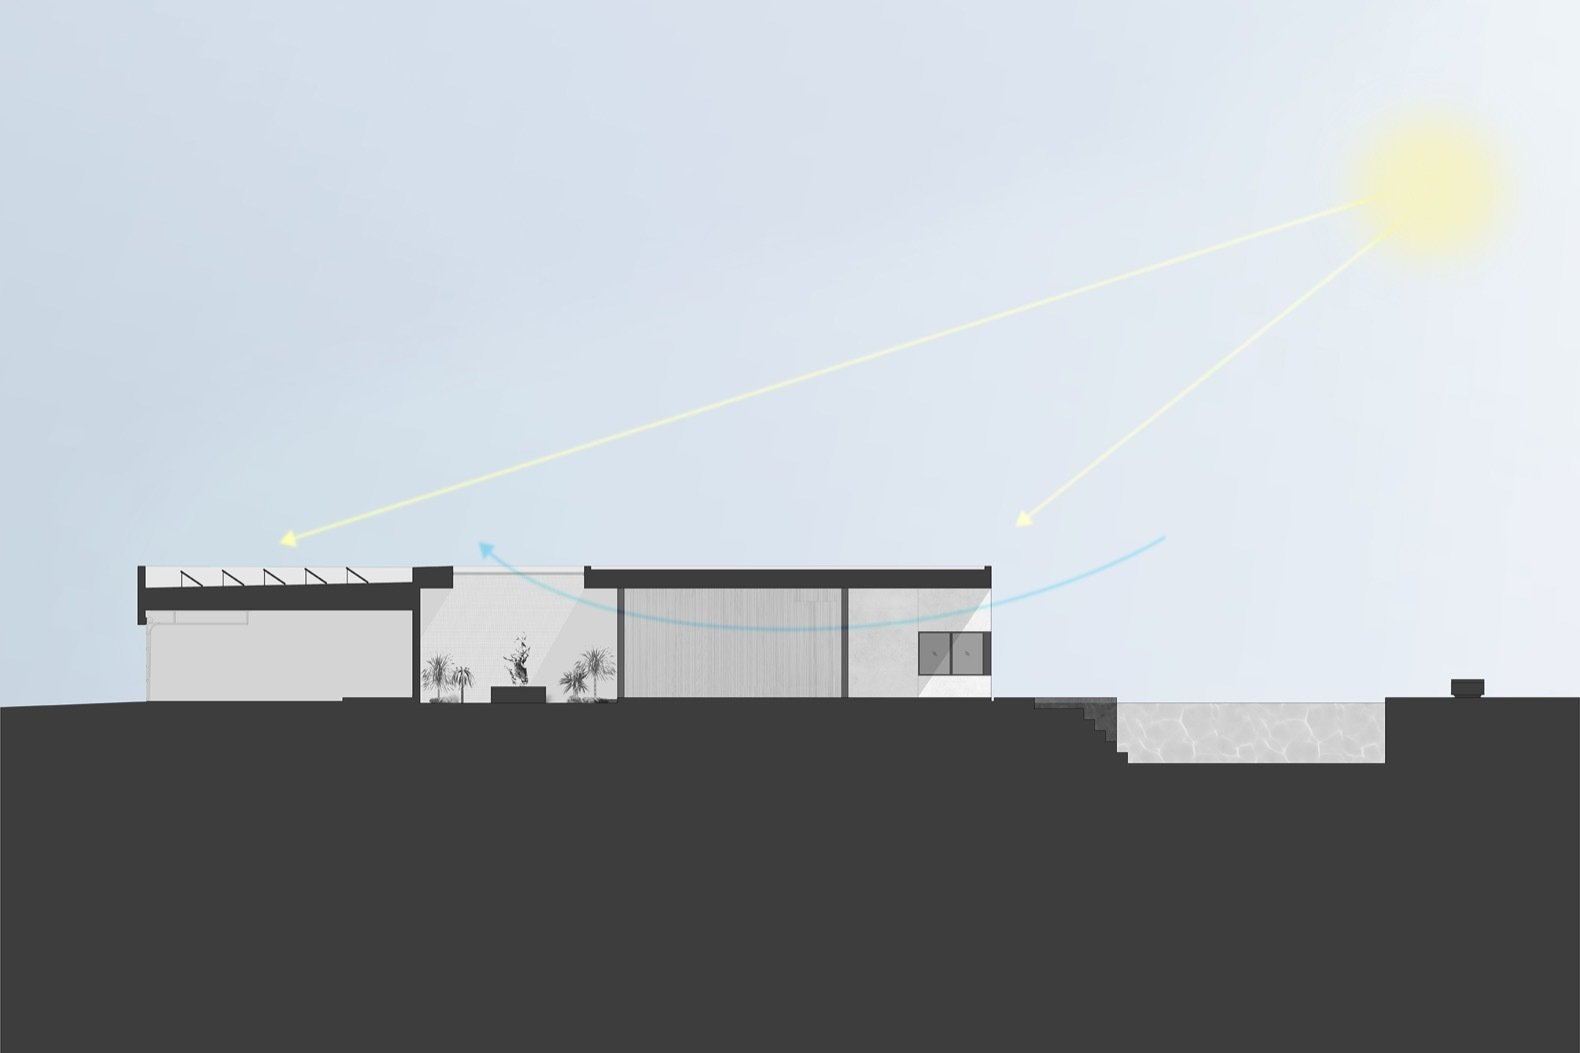 O-asis House section  Photo 27 of 27 in This Minimalist, Solar-Powered Home Is a True Desert Oasis